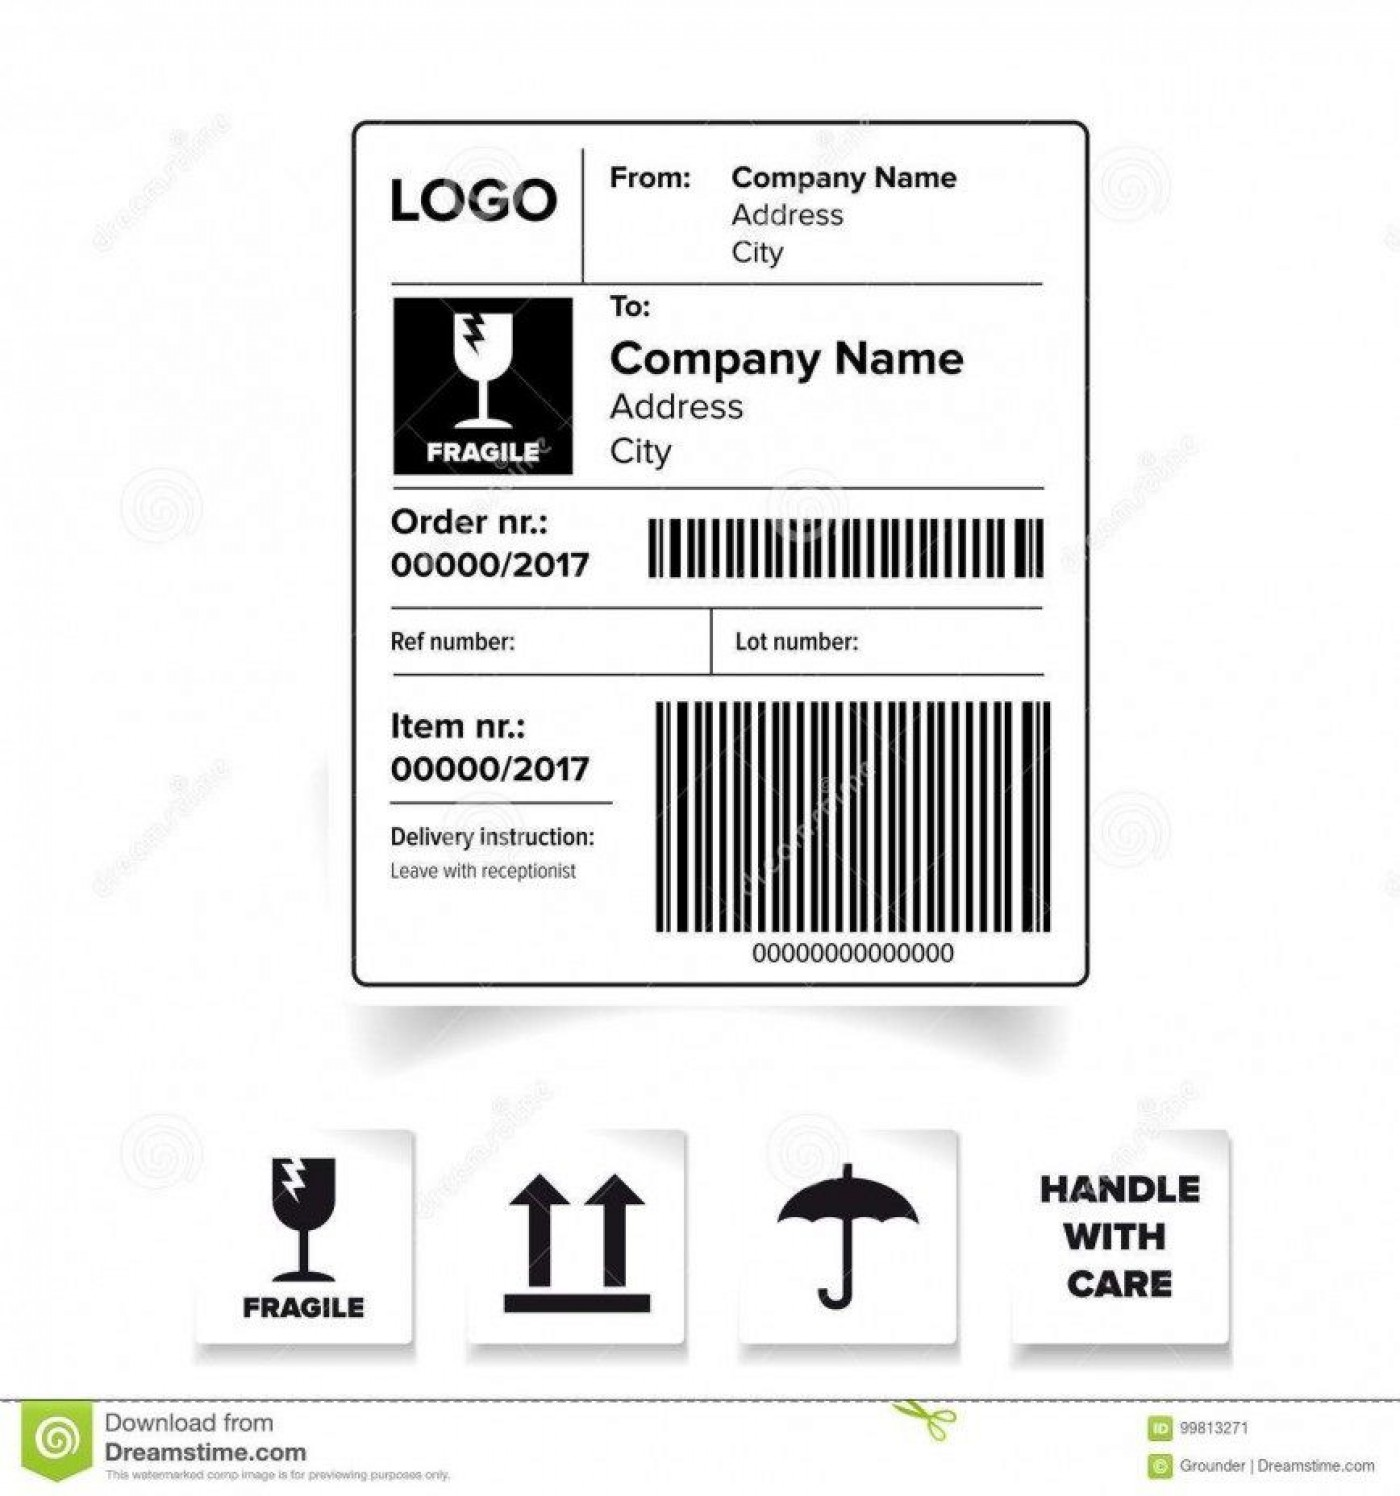 005 Impressive Free Online Shipping Label Template High Resolution 1400